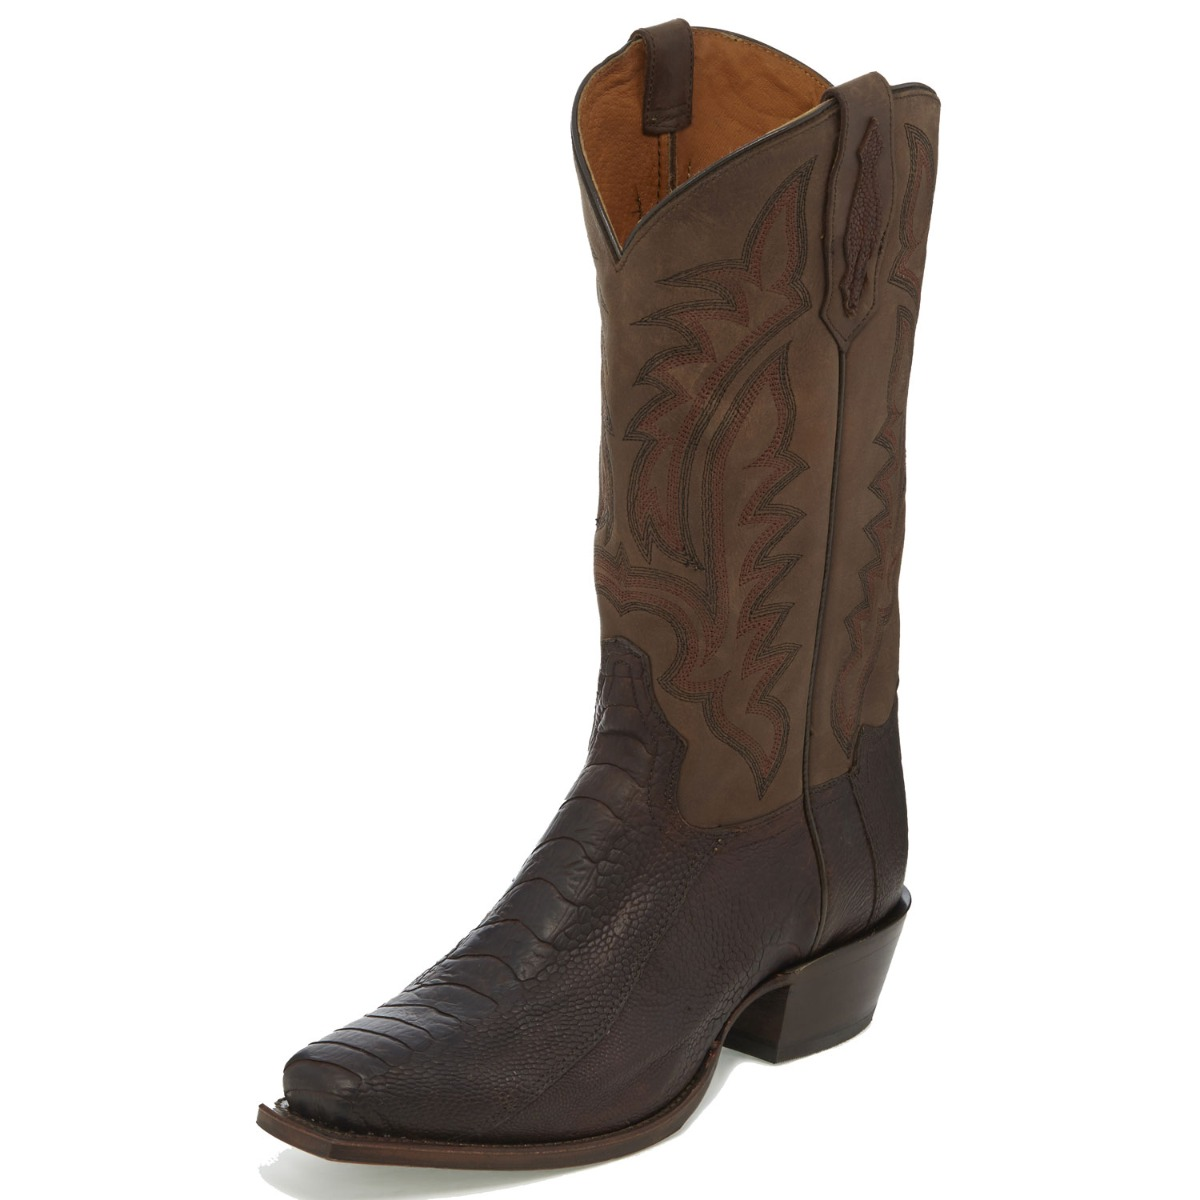 TONY LAMA MEN'S CHOCOLATE OILED OSTRICH LEG NARROW SQUARE TOE BOOTS